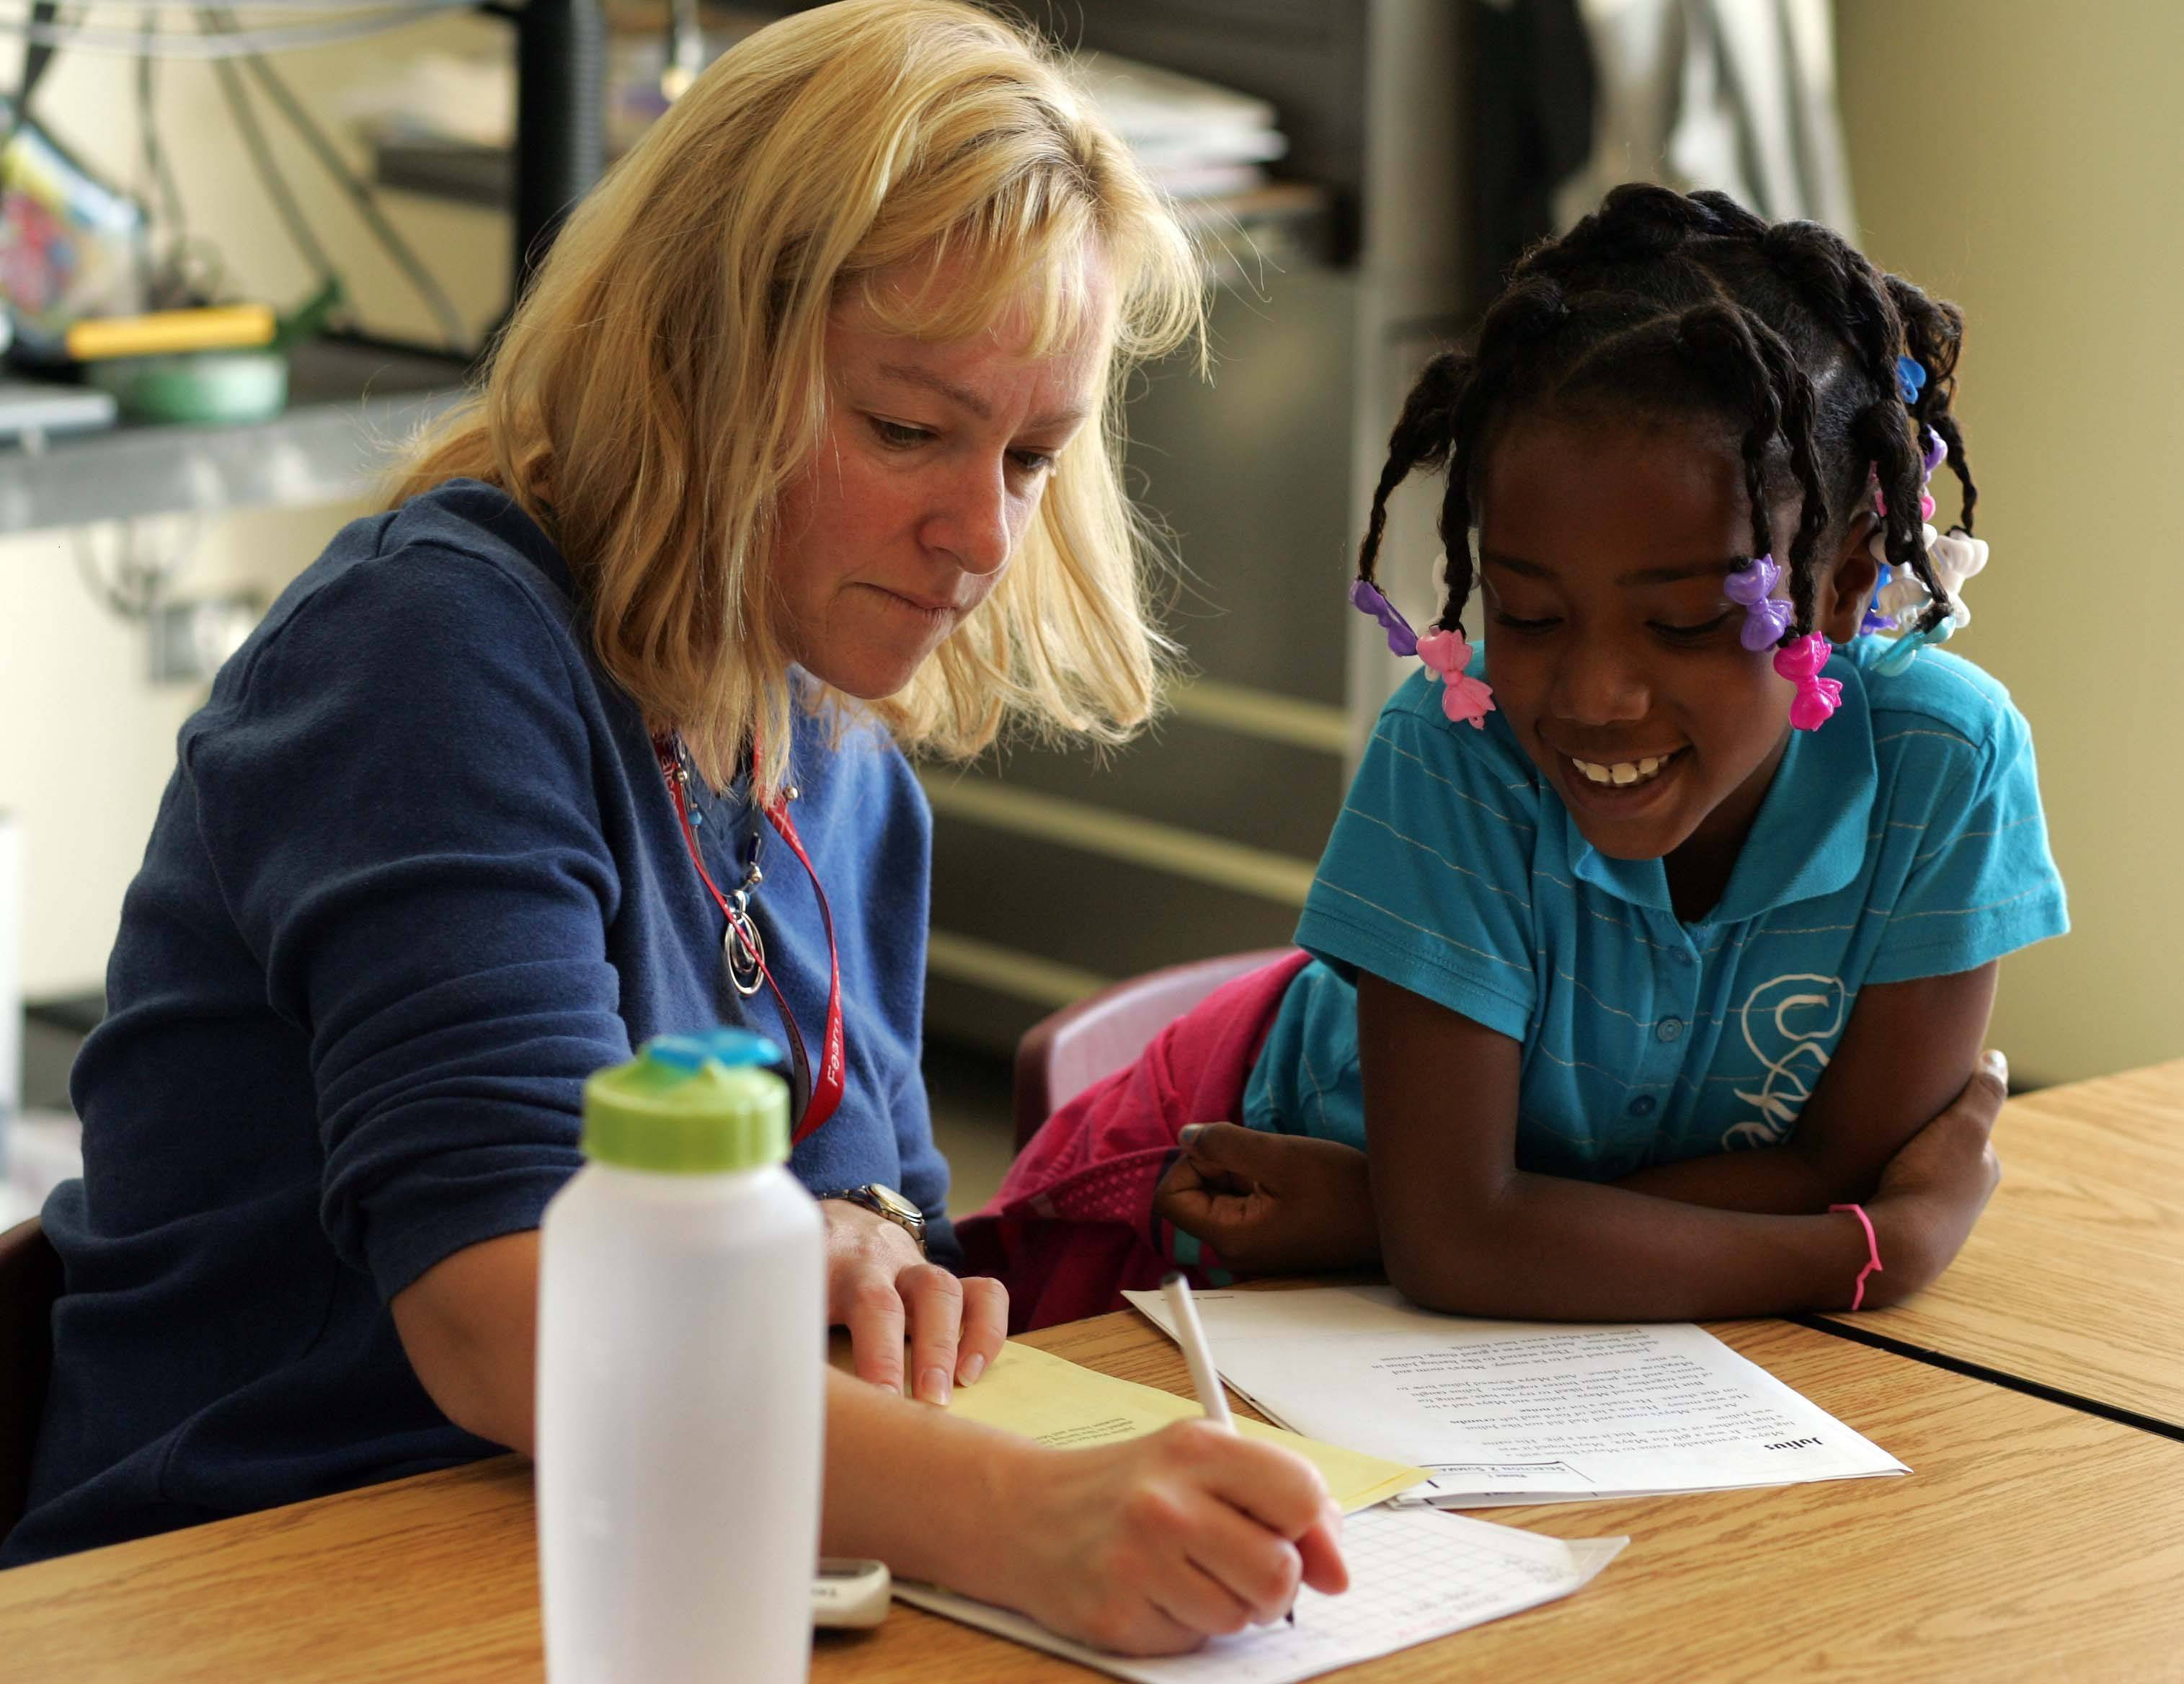 Seven-year-old Aaliyah Parker works with parent volunteer Cindy Rentes at Harold G. Fearn Elementary School in North Aurora. The school has added more individualized attention to kids having trouble to boost test scores.